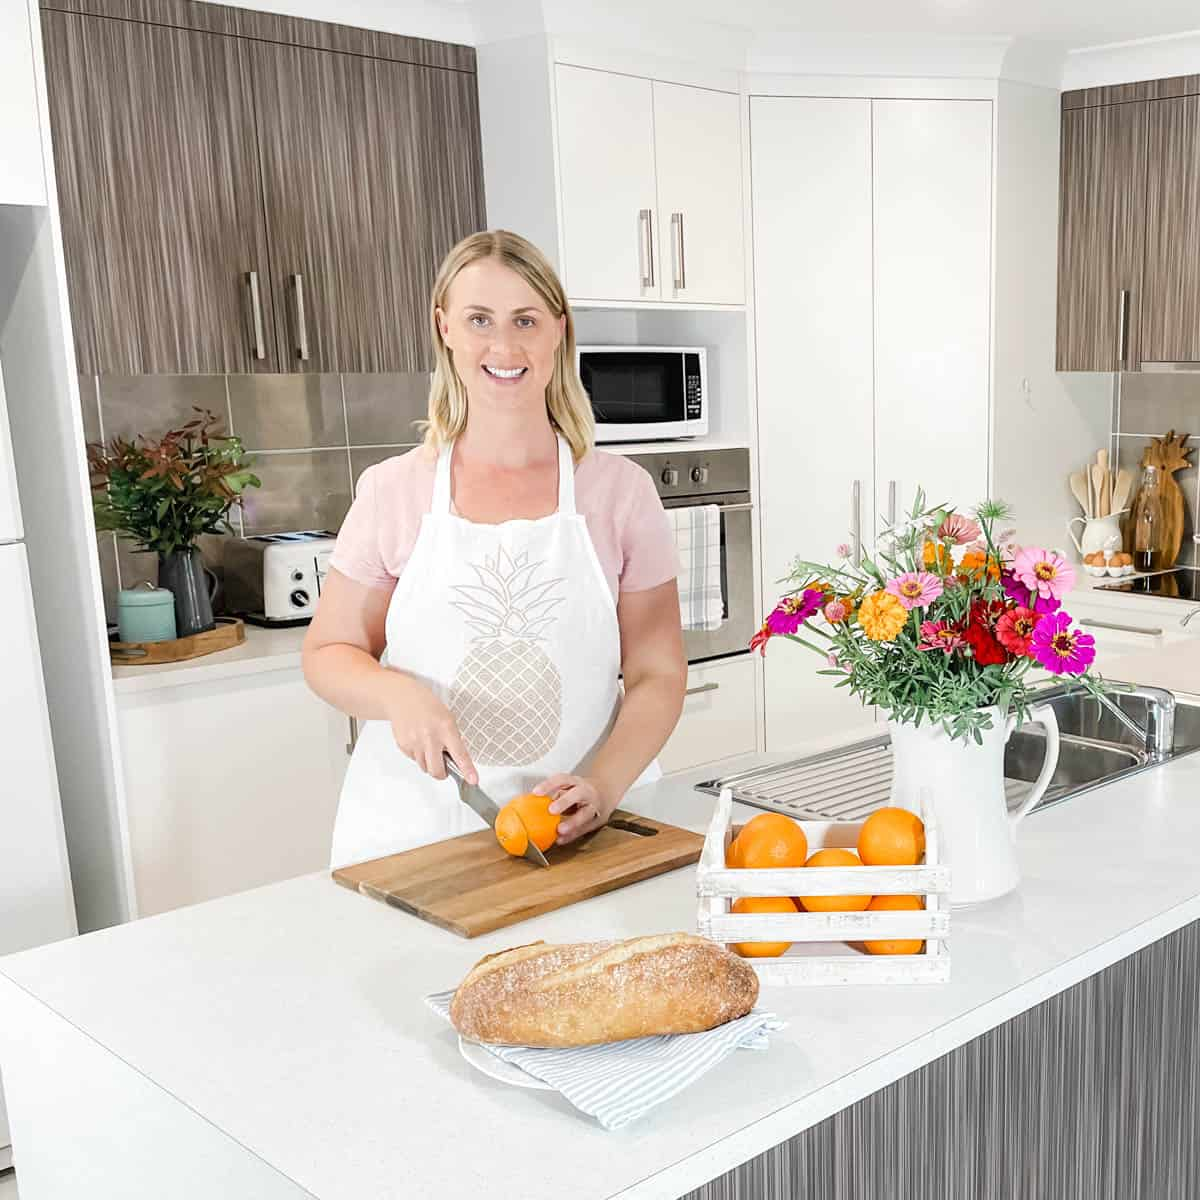 Image of Emily in the kitchen slicing an orange with a knife on a wooden chopping board